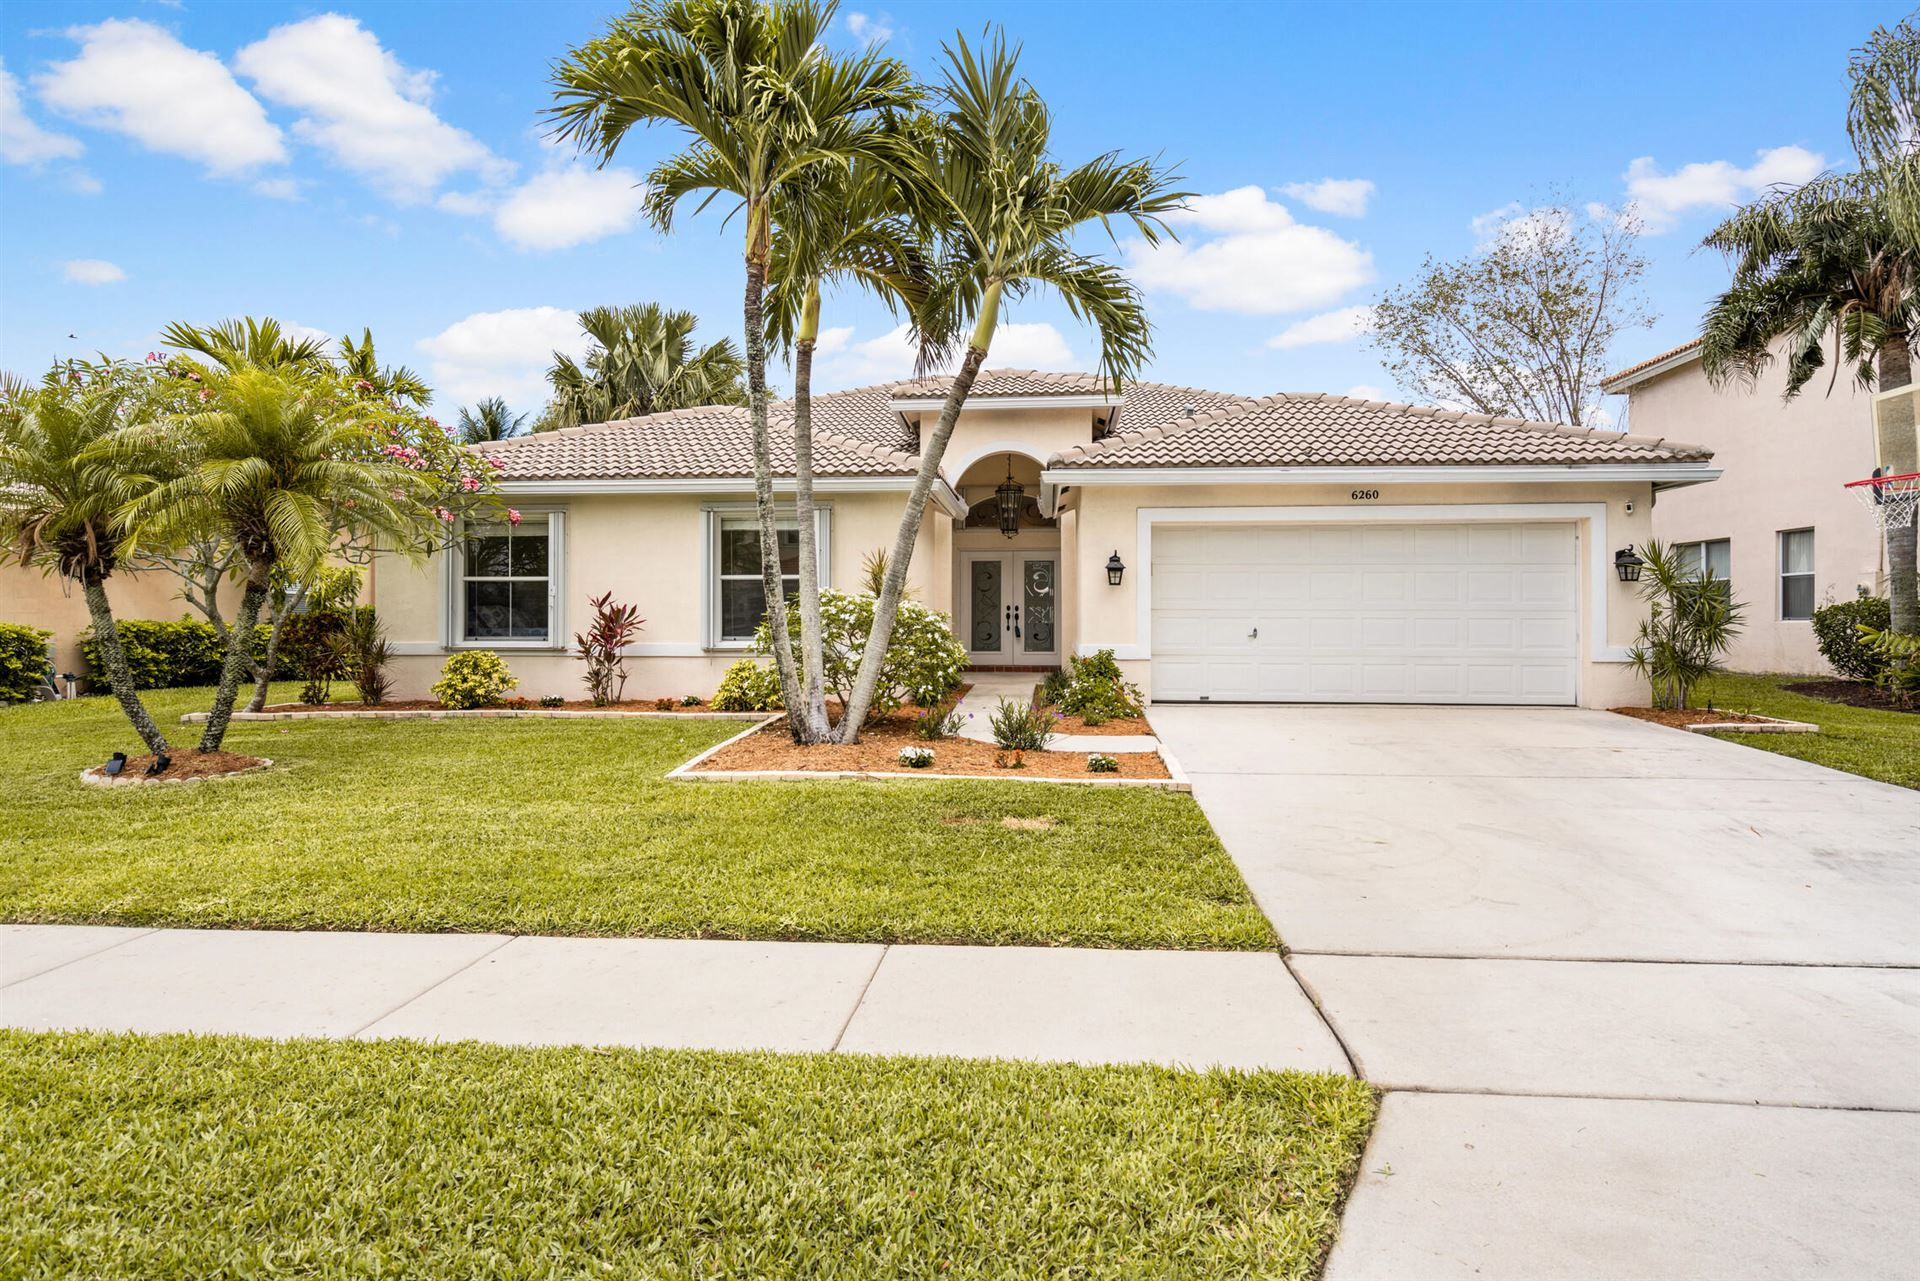 6260 Indian Forest Circle, Lake Worth, FL 33463 - MLS#: RX-10716958